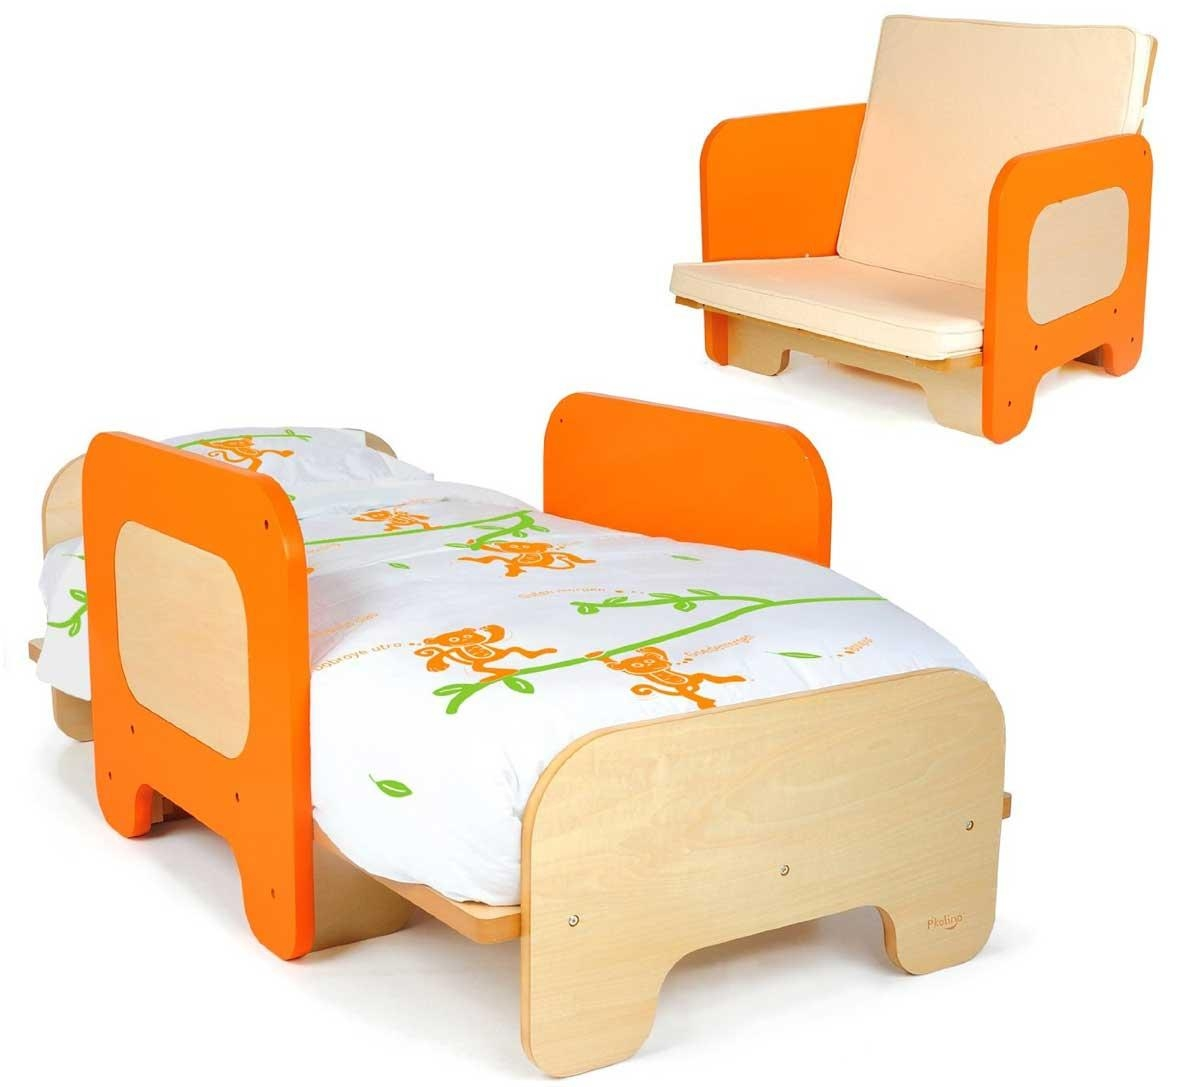 Sofa Beds For Kids 20 Best Childrens Sofa Bed Chairs Sofa Ideas